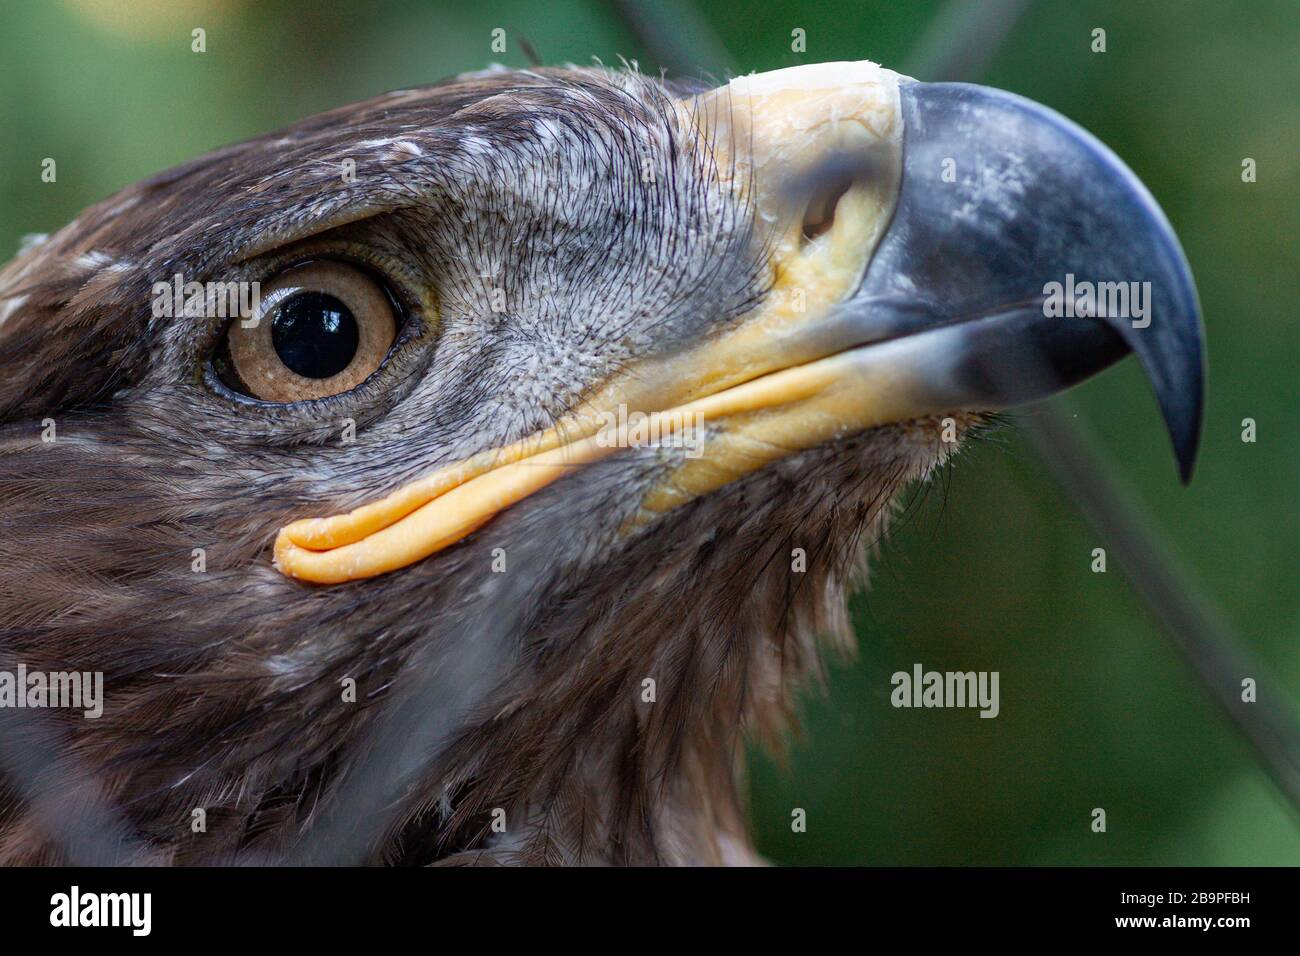 Adult golden eagle bird in a cage. Dangerous bird is a predator with a large beak behind bars. Golden eagle is the largest representative of the entire hawk family, a strong and large eagle Stock Photo